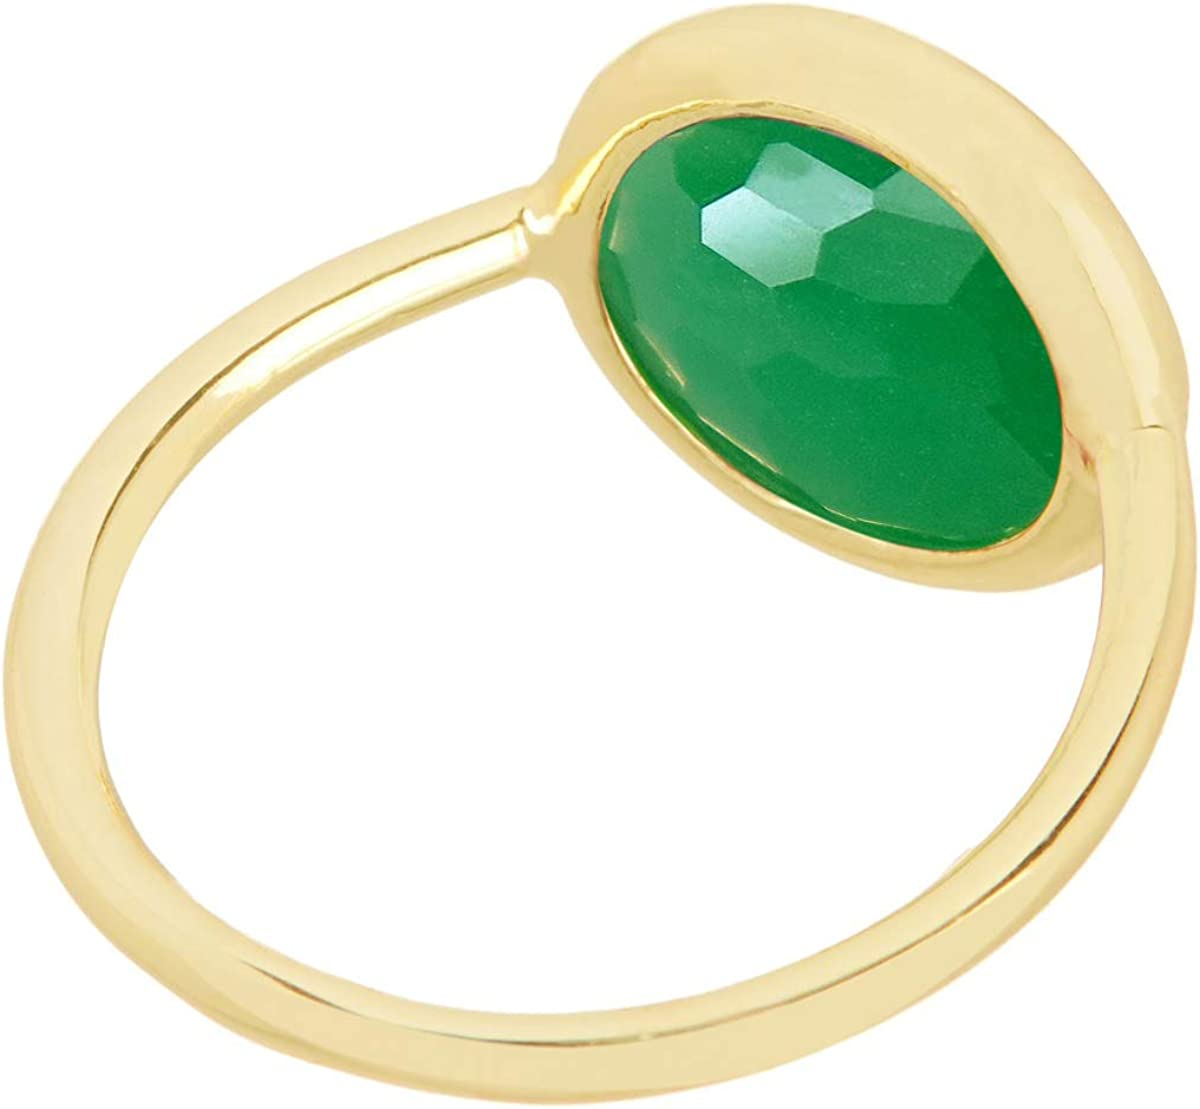 SPARKLER JEWELS Green Onyx,10mm Round,925 Sterling Silver,Band Style Rings,Gemstone Jewelry Claw Rings,Best Gift